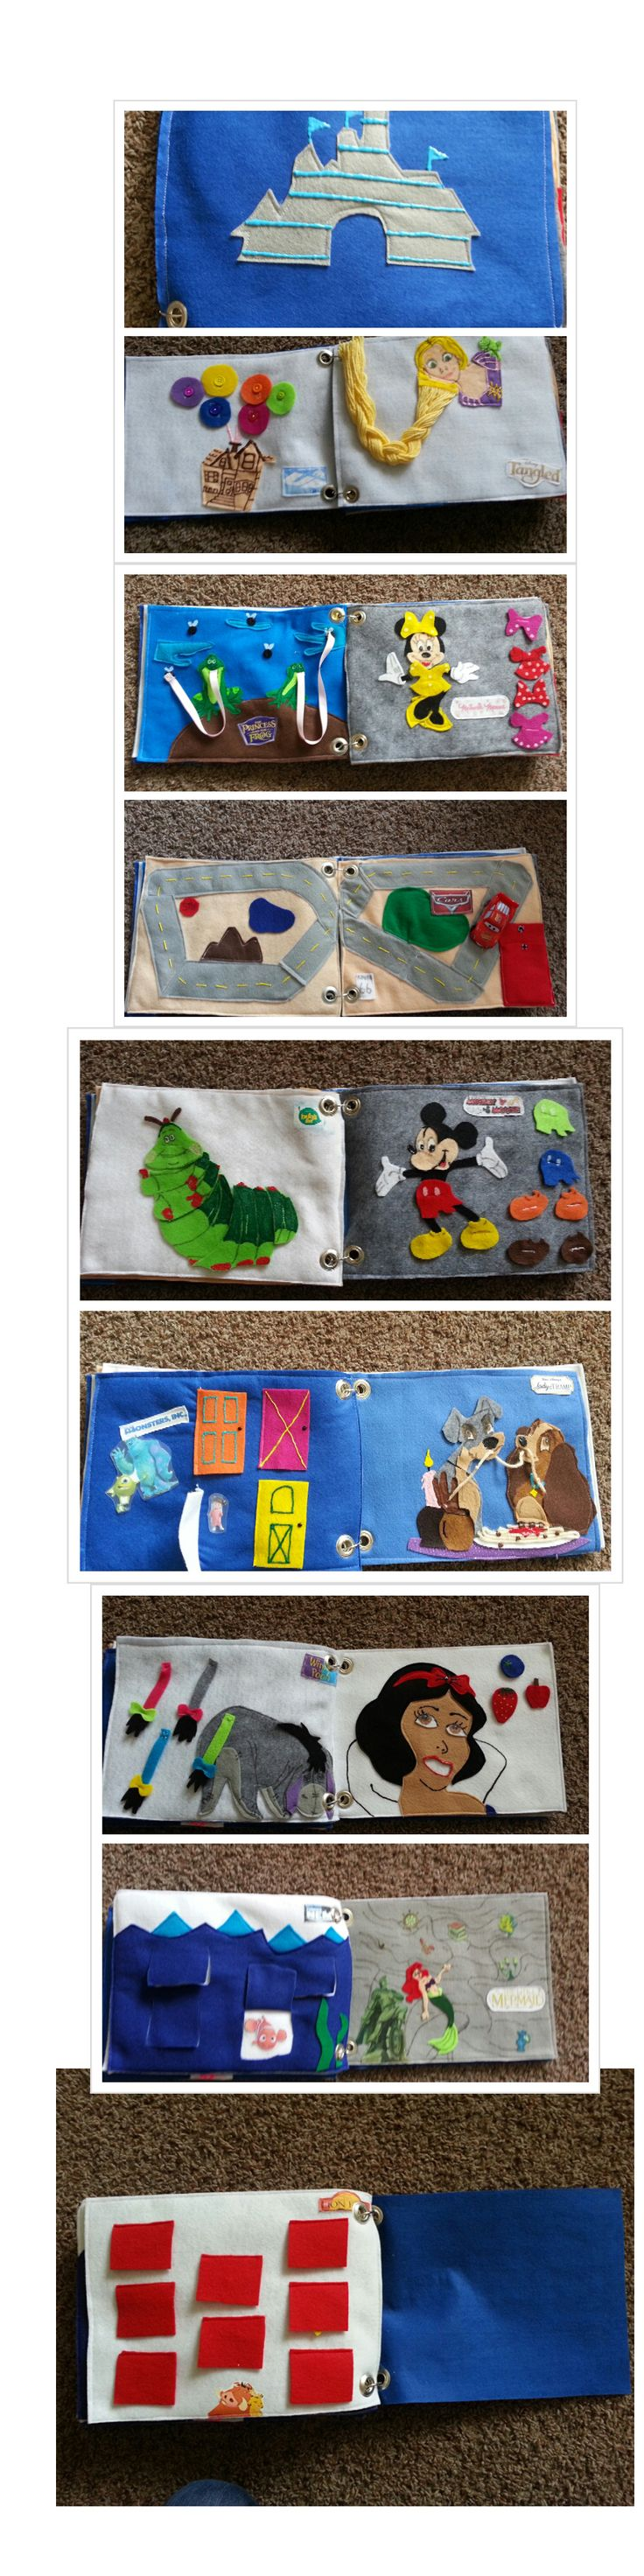 This was a Disney version I created. I love it and so do my kids! Next up Harry Potter and Lord of the Rings...